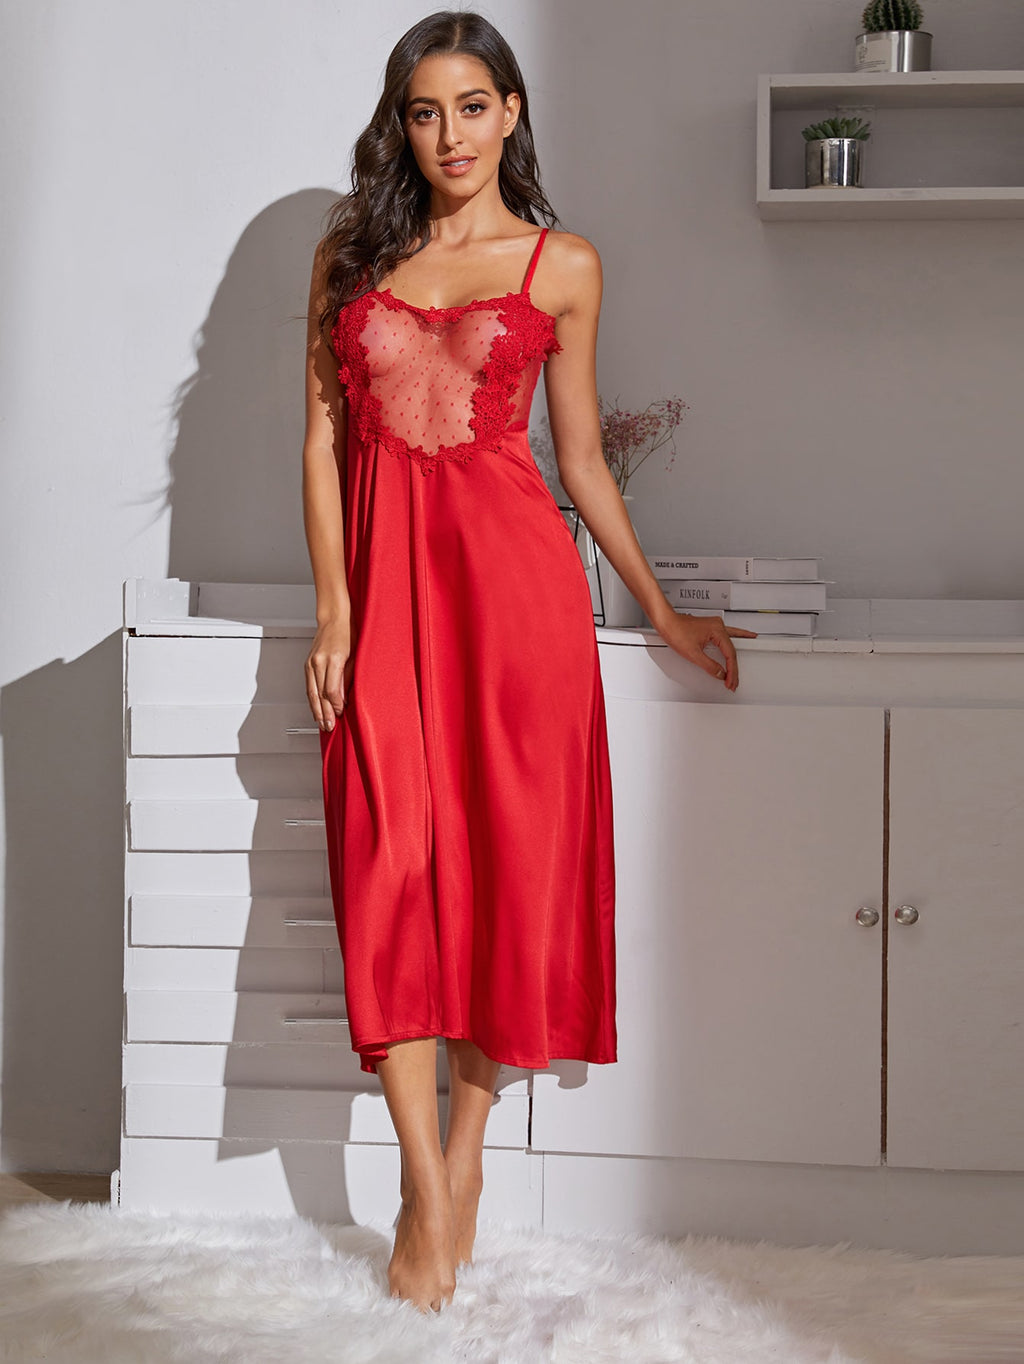 Contrast Lace Satin Slips With Thong (4405401419841)